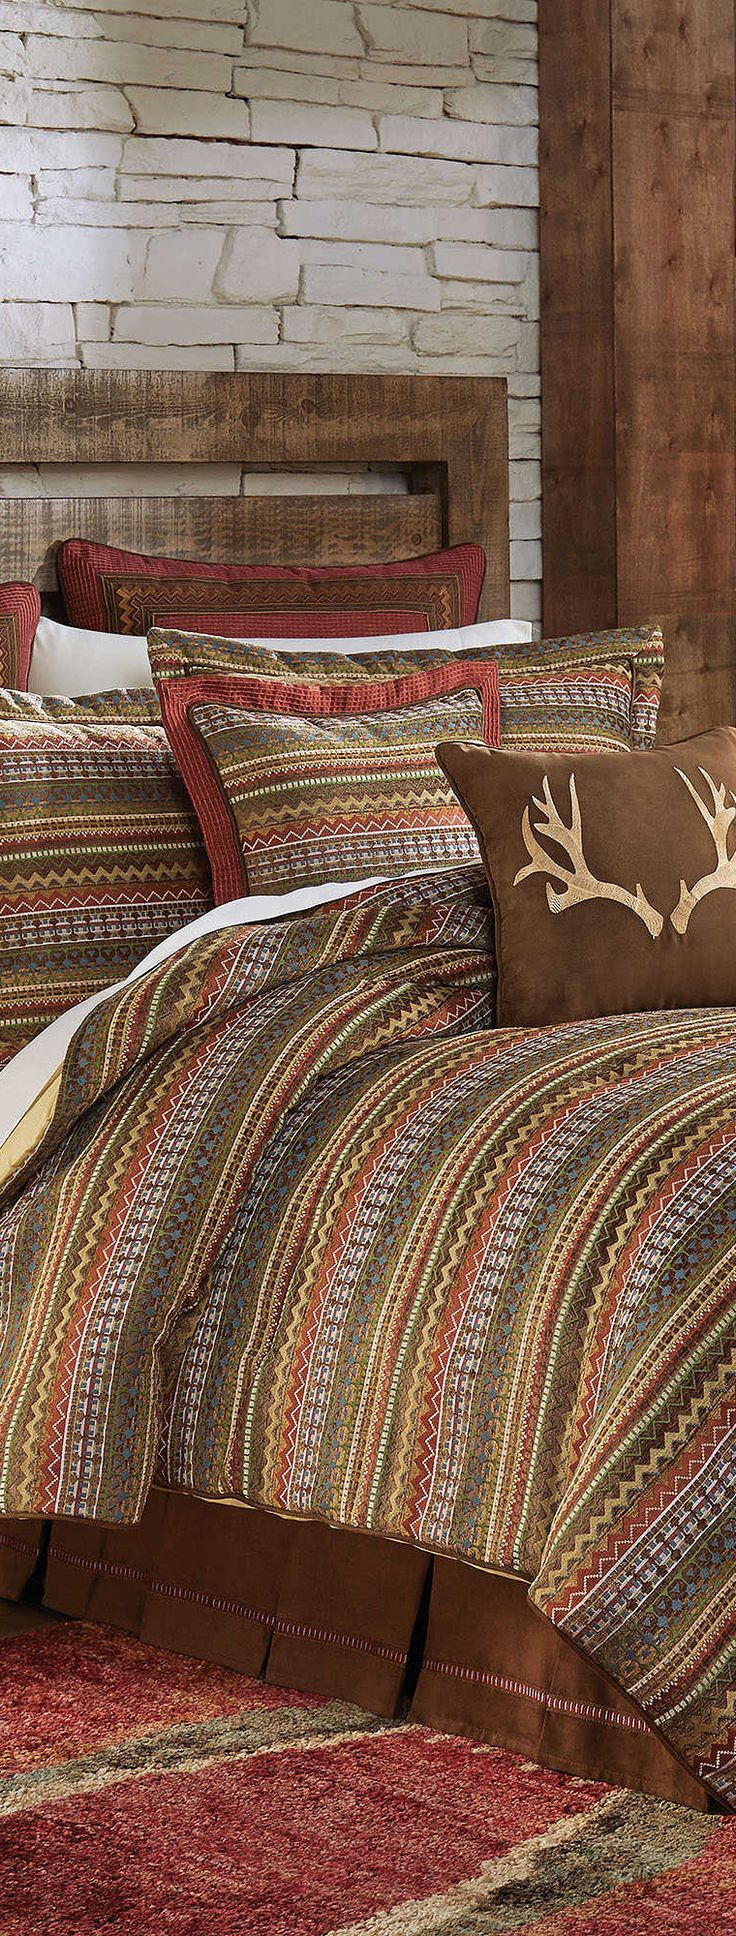 Western bedding for girls - Find This Pin And More On Cabin Bedding And Western Bedding Collections